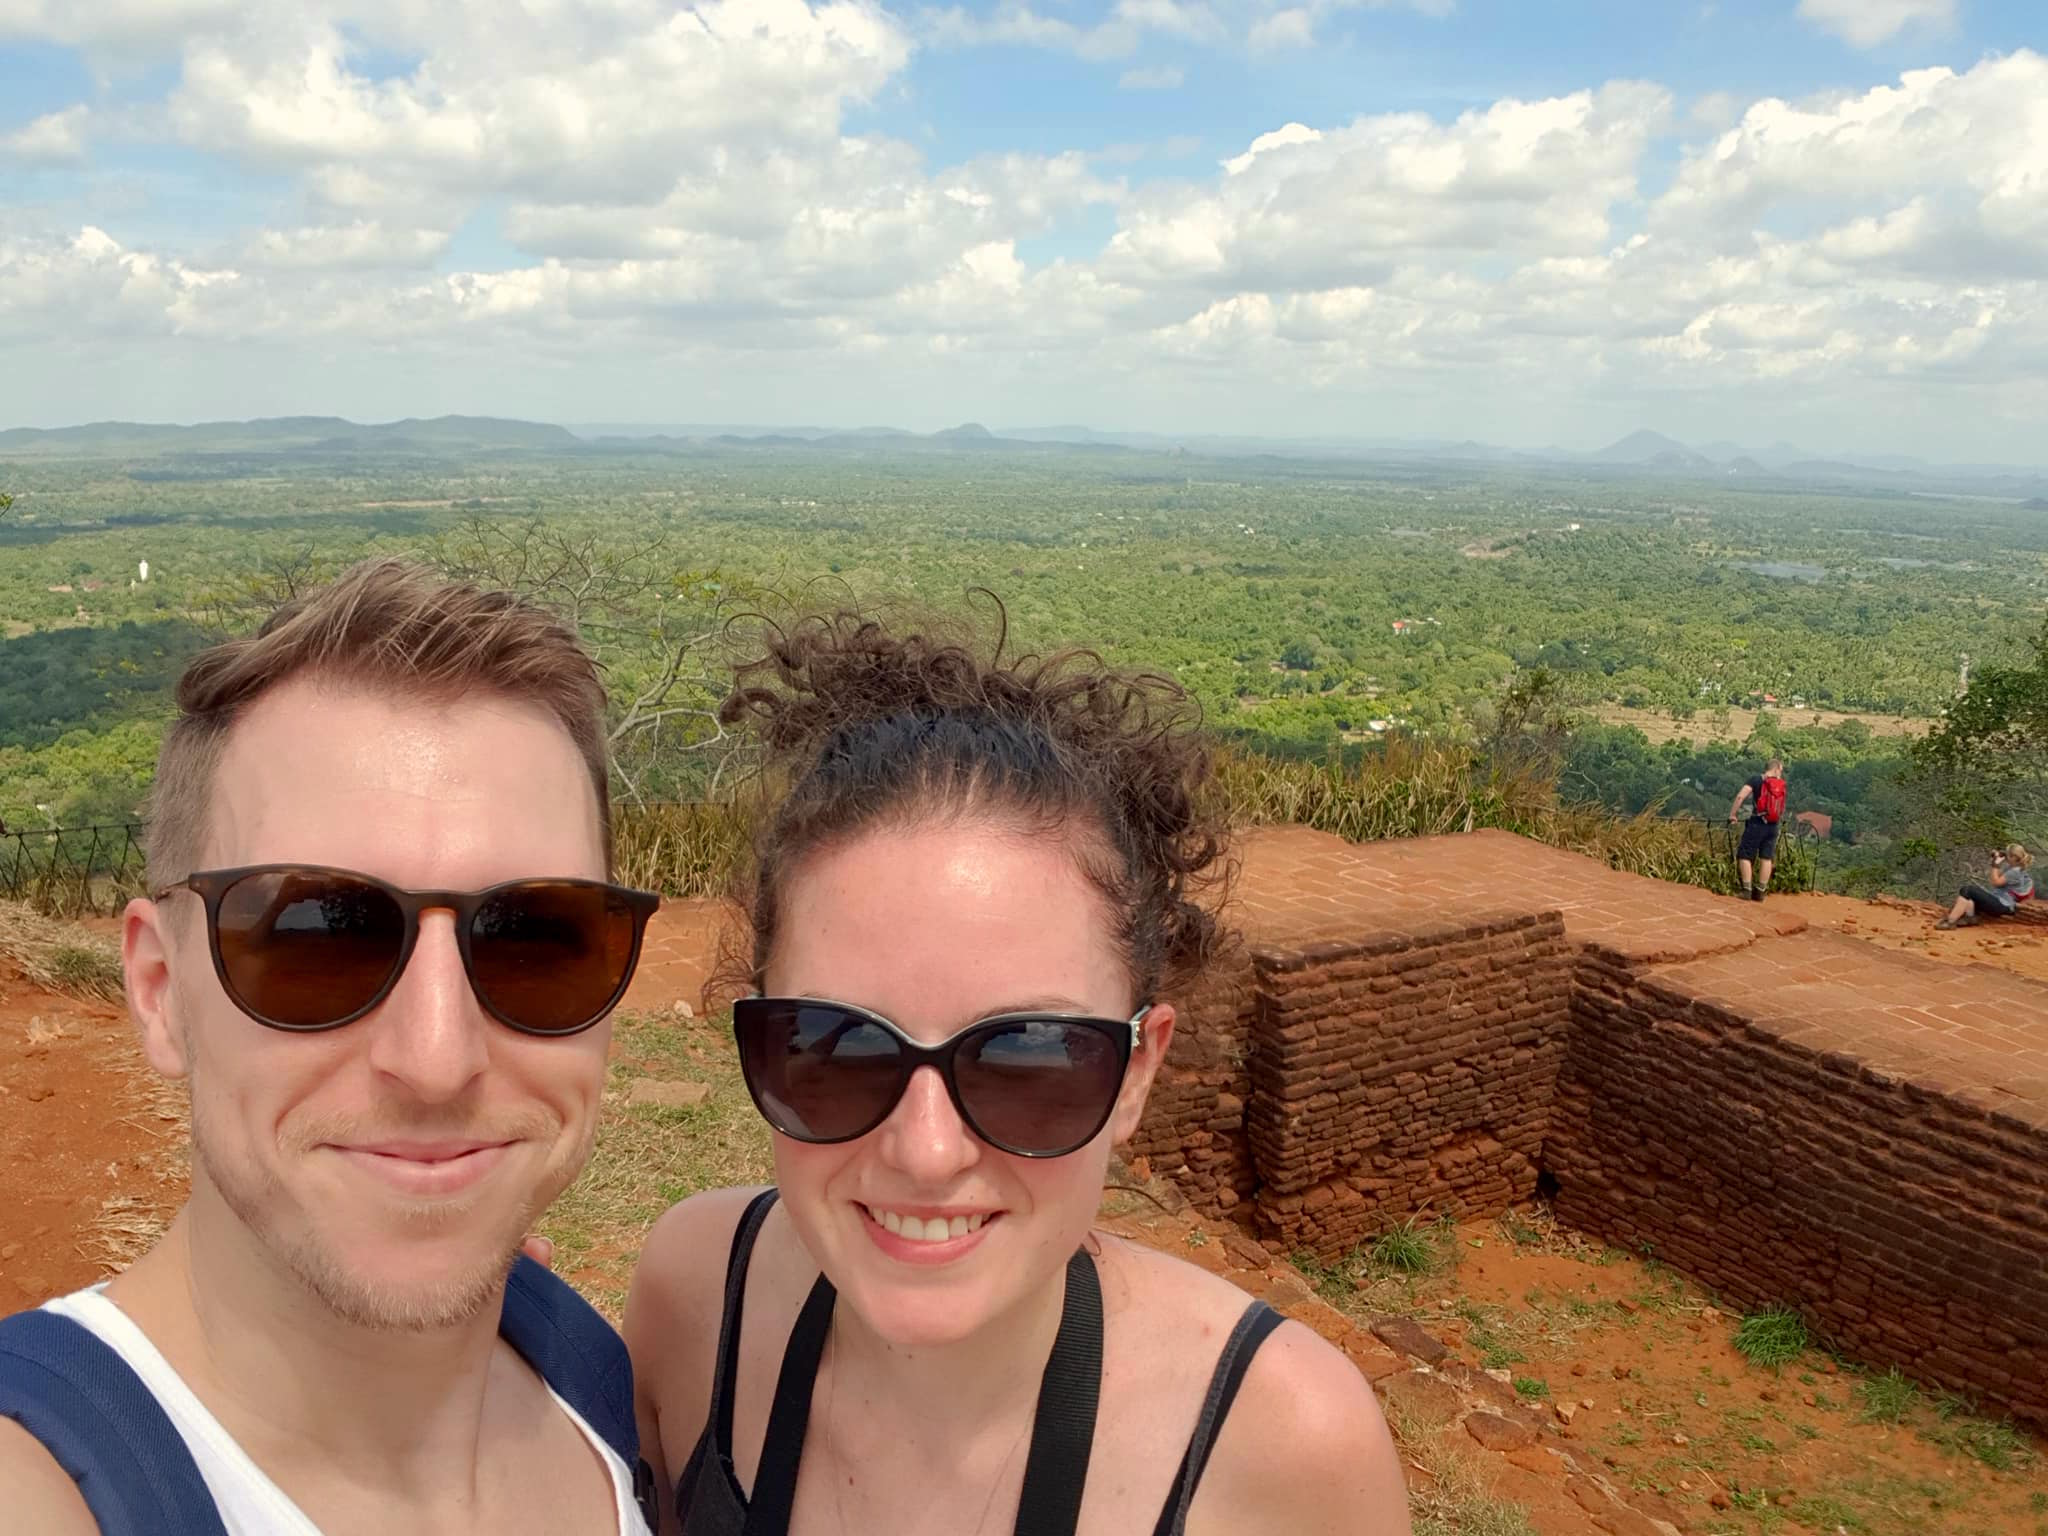 invite-to-paradise-sri-lanka-maldives-holiday-honeymoon-specialists-customer-guest-feedback-zane-lisa-butcher-sigiriya-view.jpg